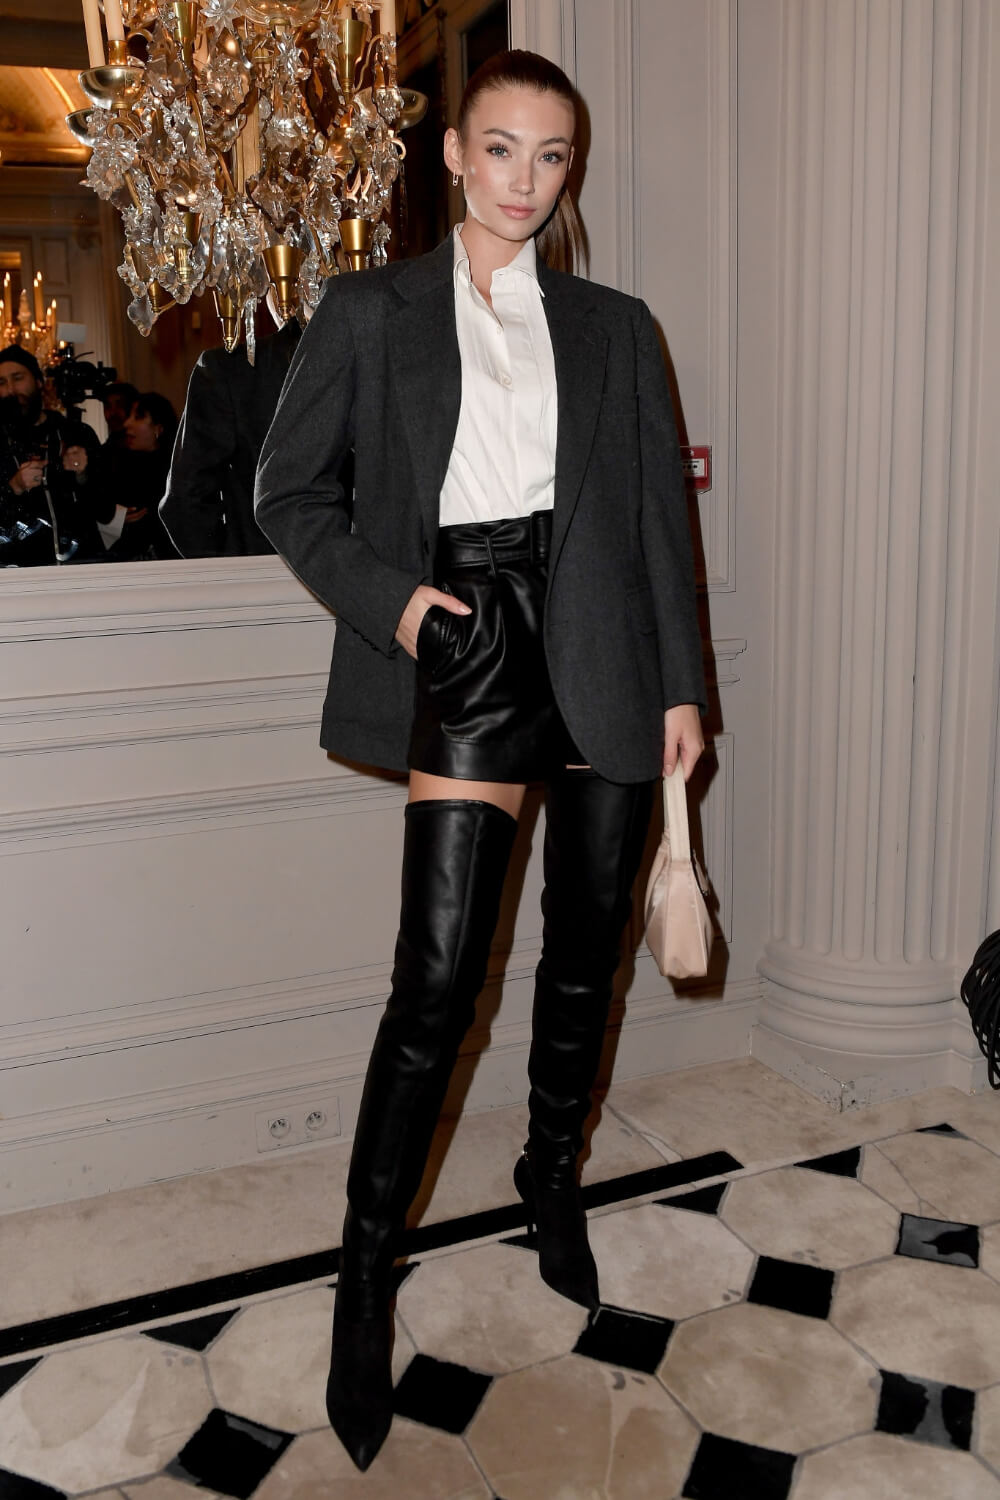 Lorena Rae attends the Monot show as part of the Paris Fashion Week